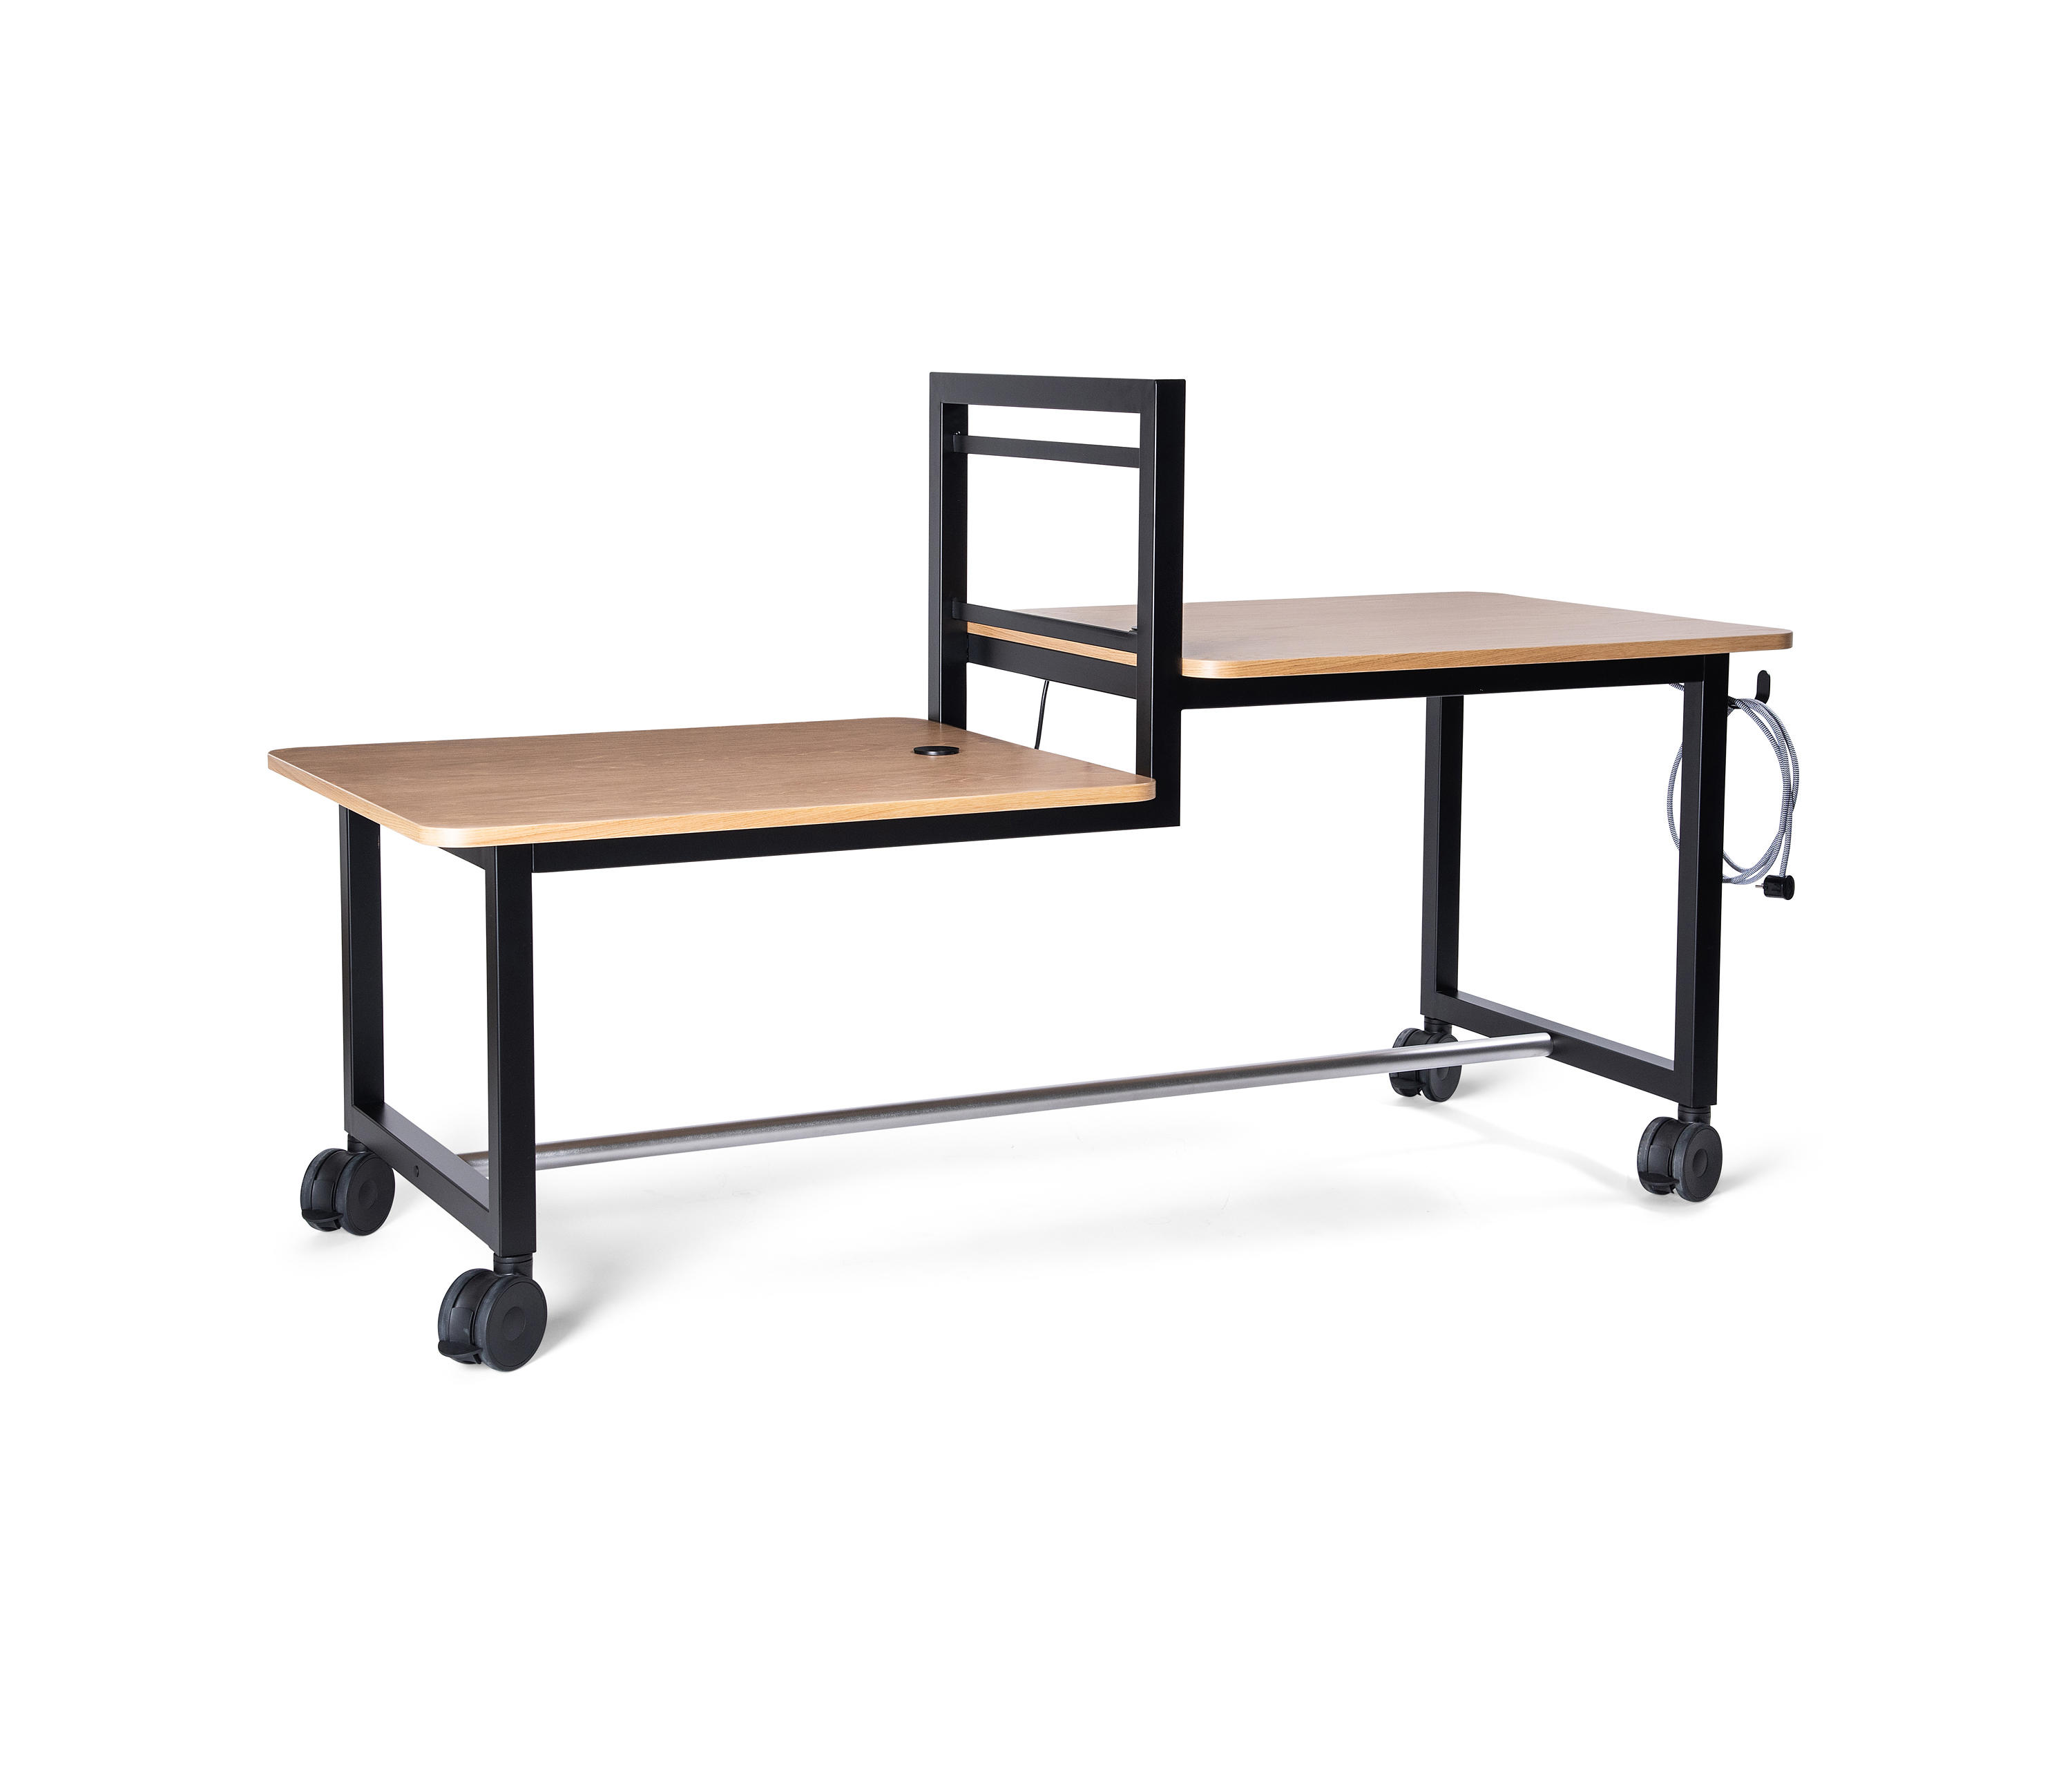 wholesale dealer 2028e bb379 VAGABOND DUO TABLE - Contract tables from Materia   Architonic